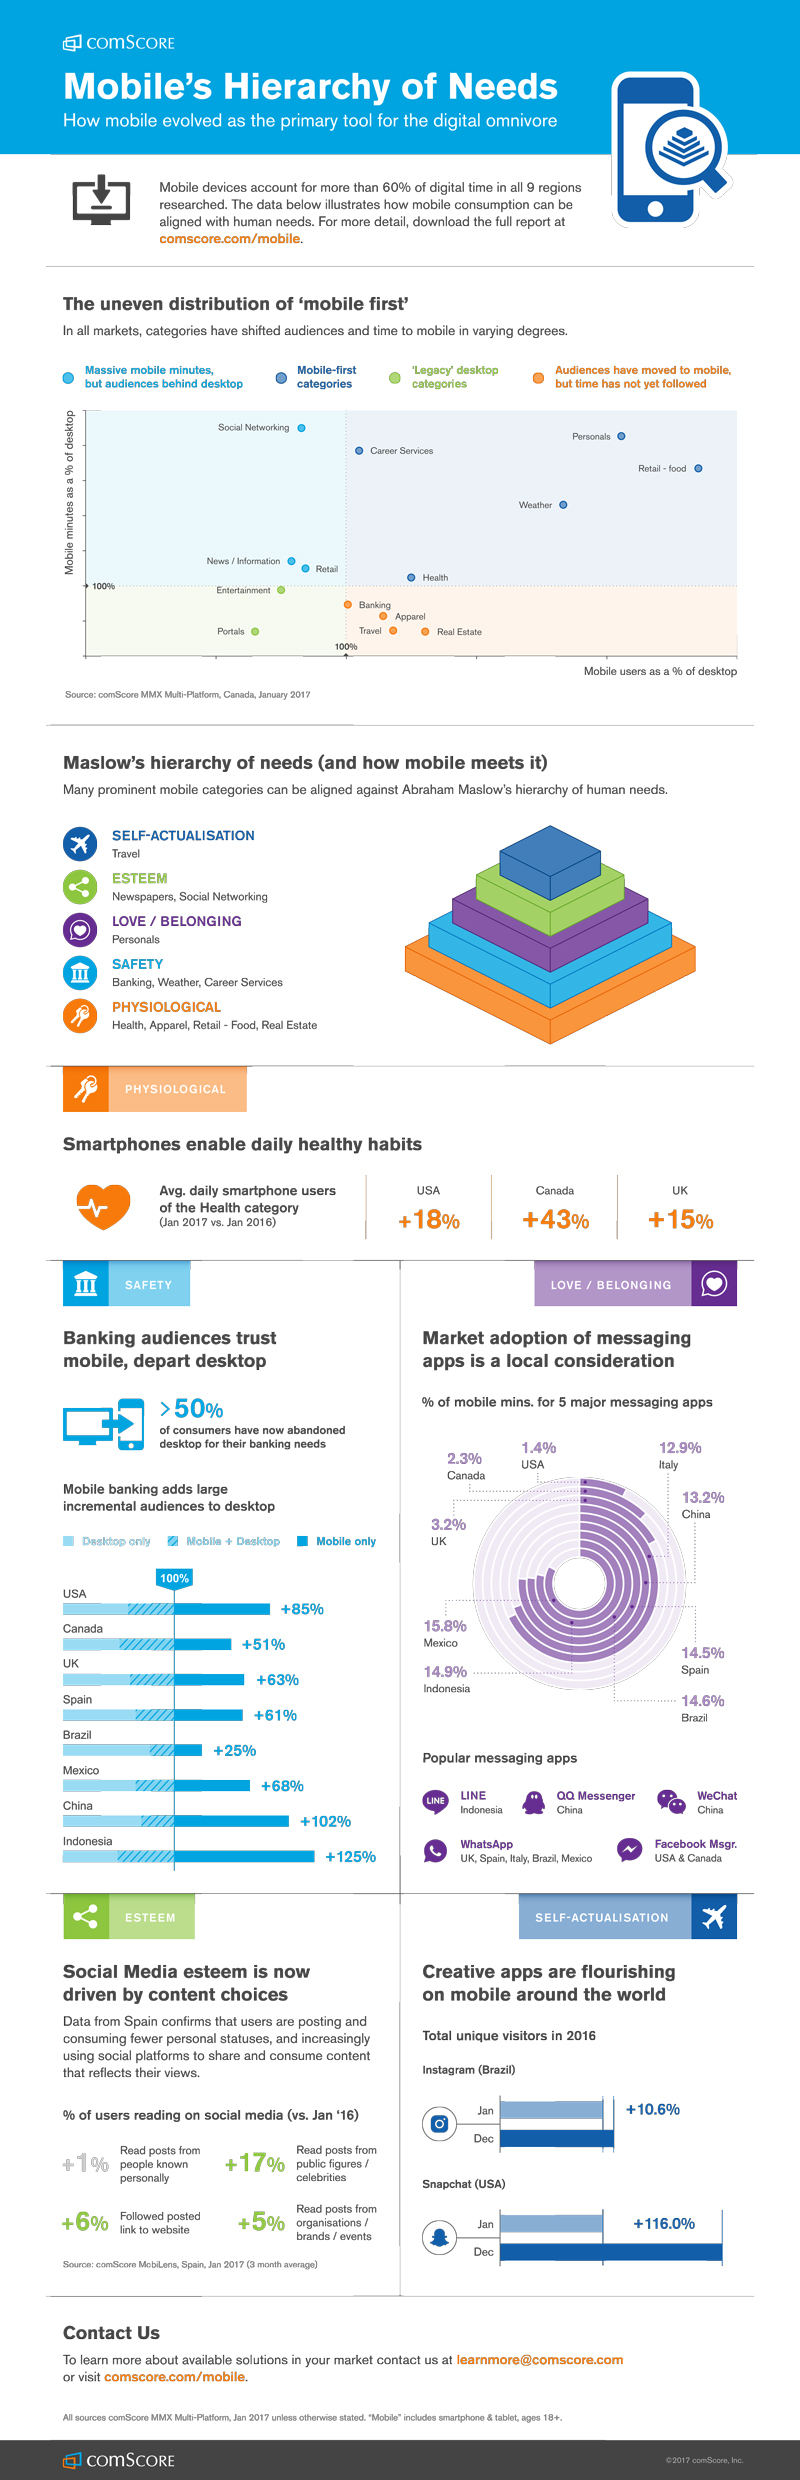 Mobile-Hierarchy-Infographic-800x2480.jpg